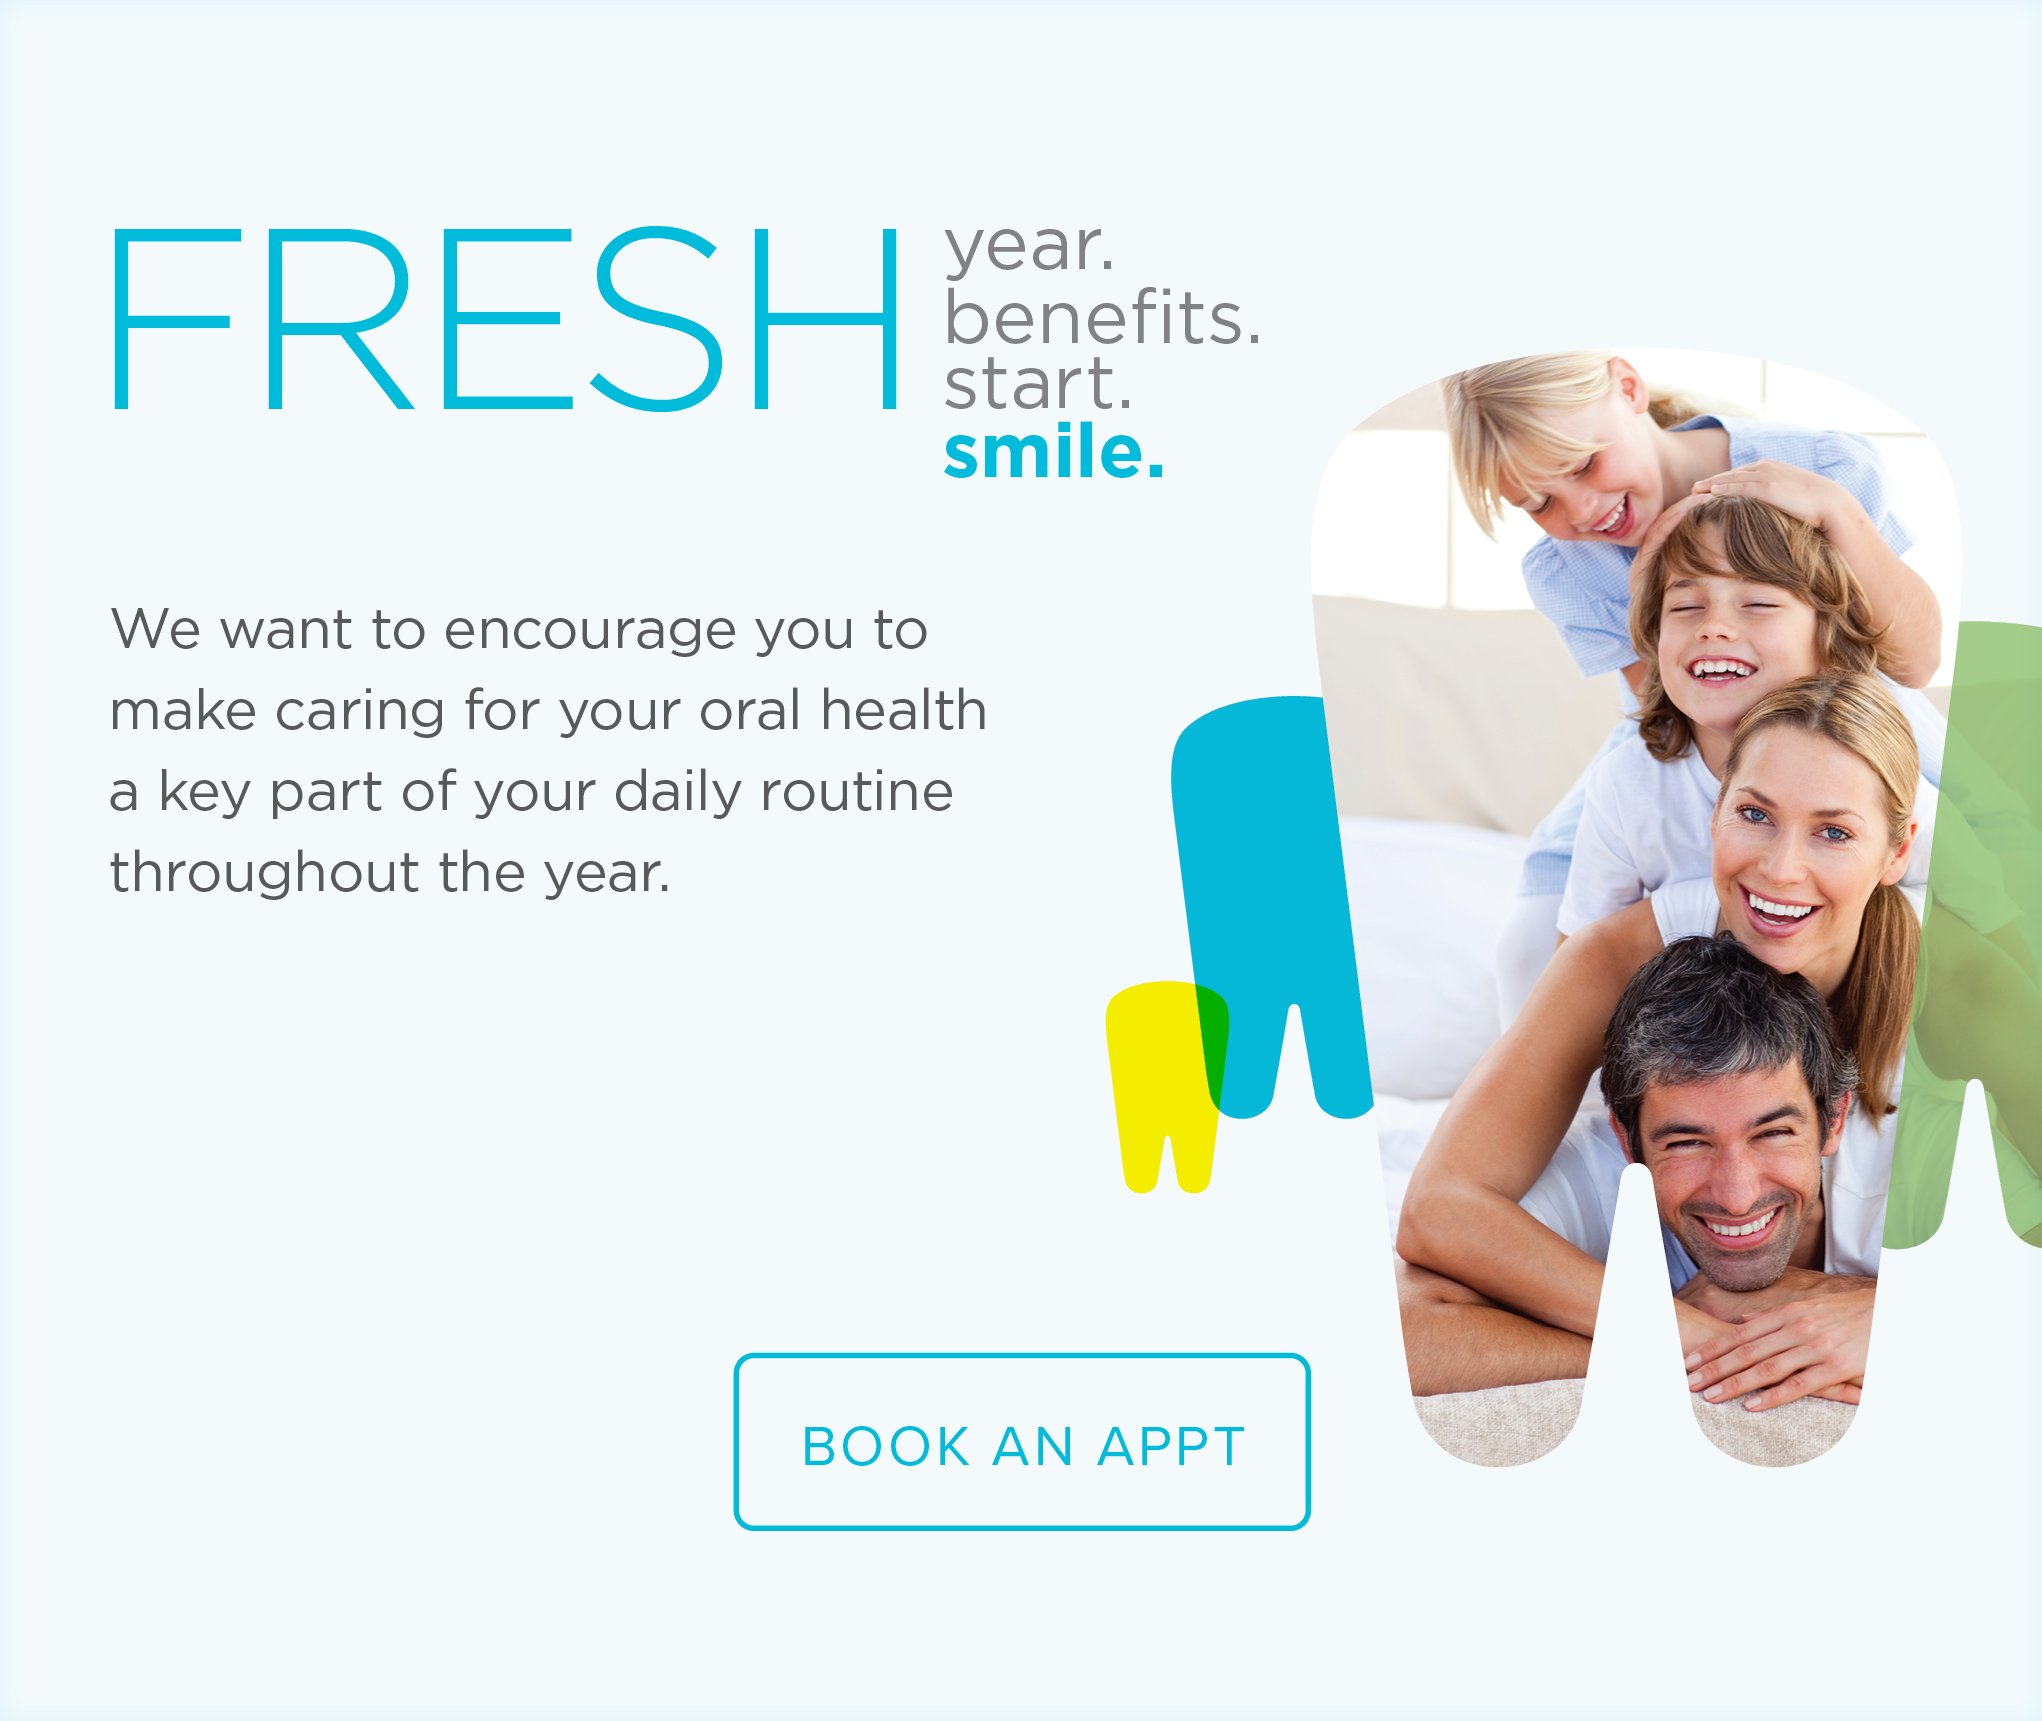 Sammamish Smiles Dentistry - Make the Most of Your Benefits